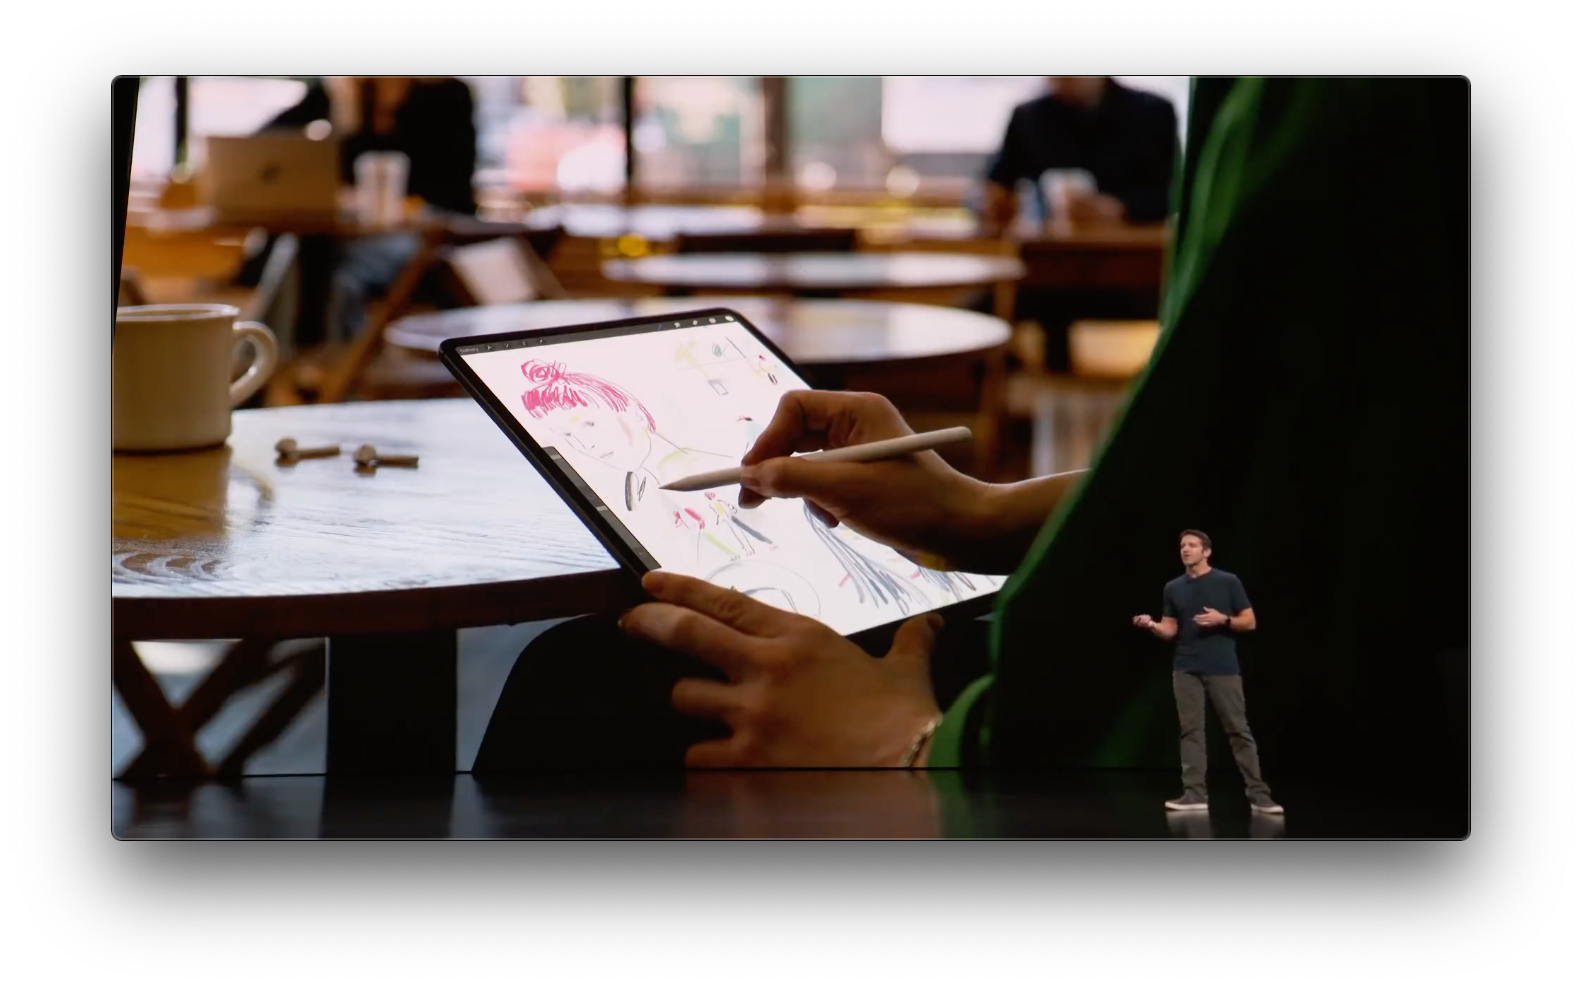 Today, the iPad Pro emphasizes creativity and there are multiple input options.